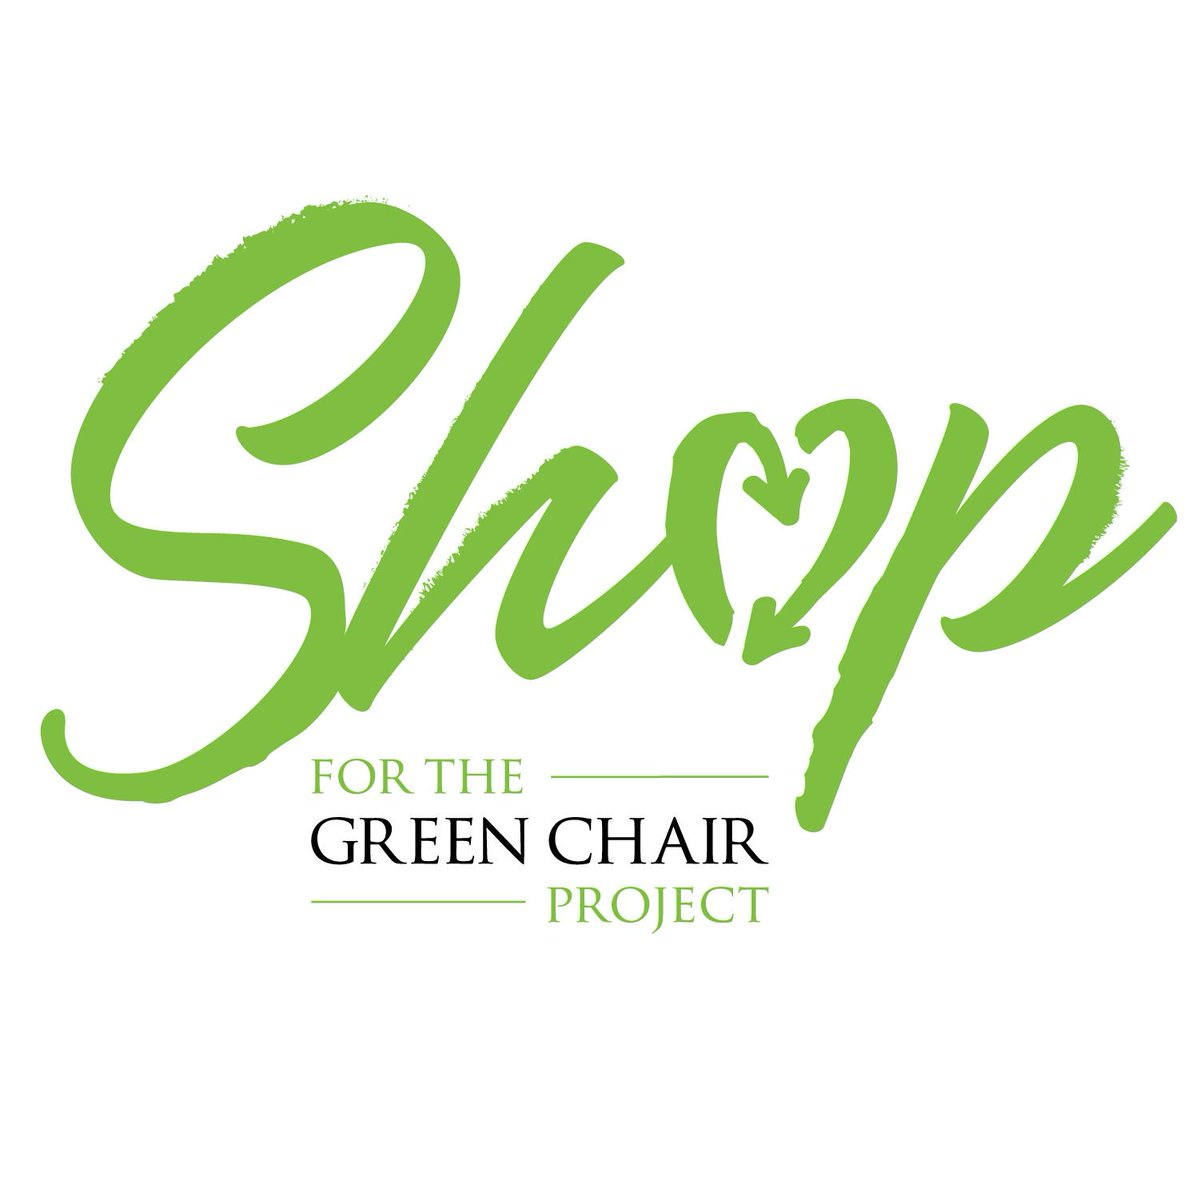 Green Chair Project On Twitter Did You Know Our Next